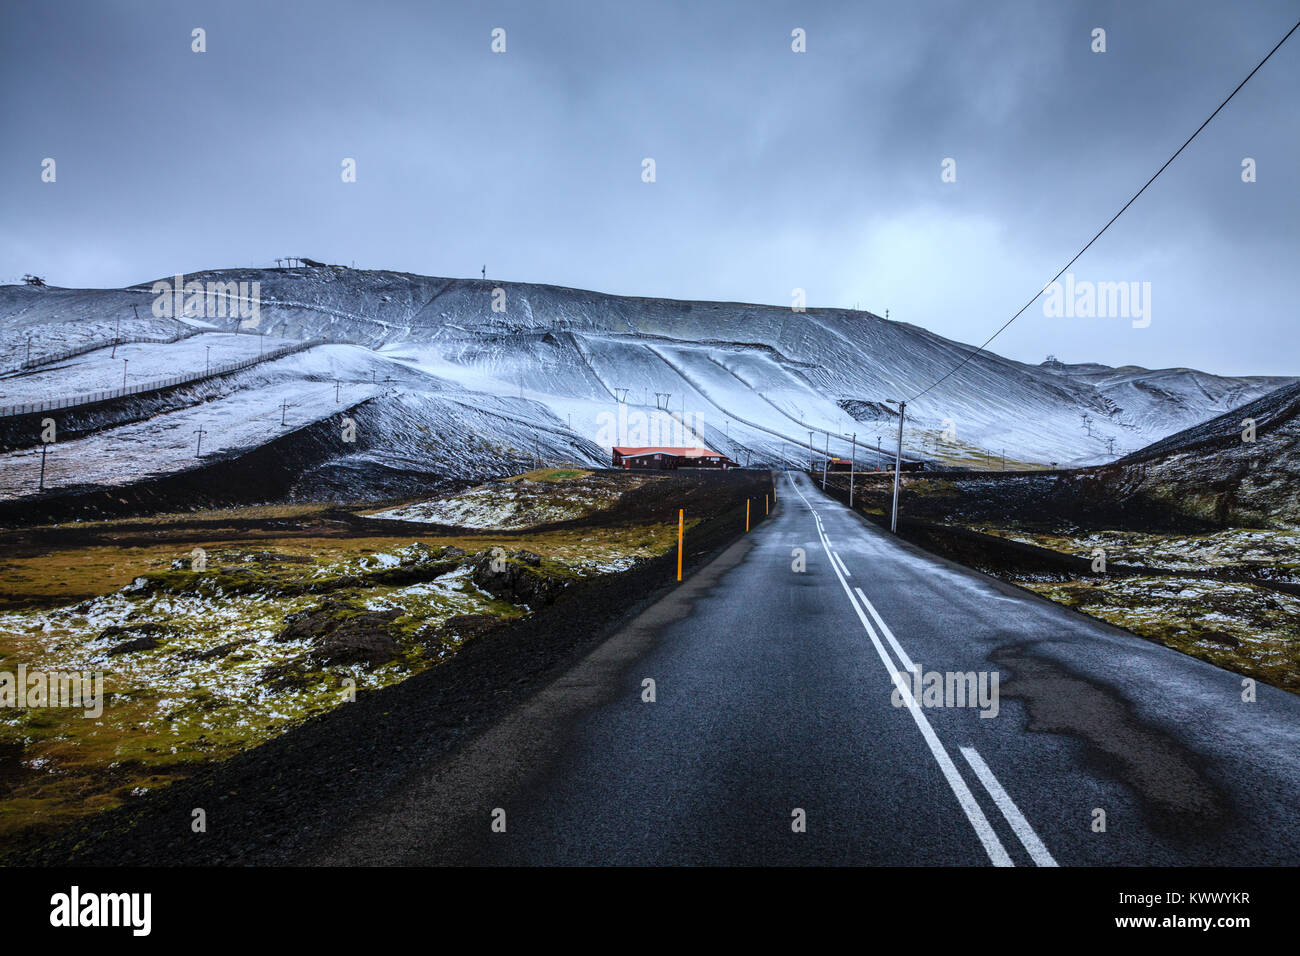 First snow at Blafjoll ski resort in Iceland in early September - Stock Image